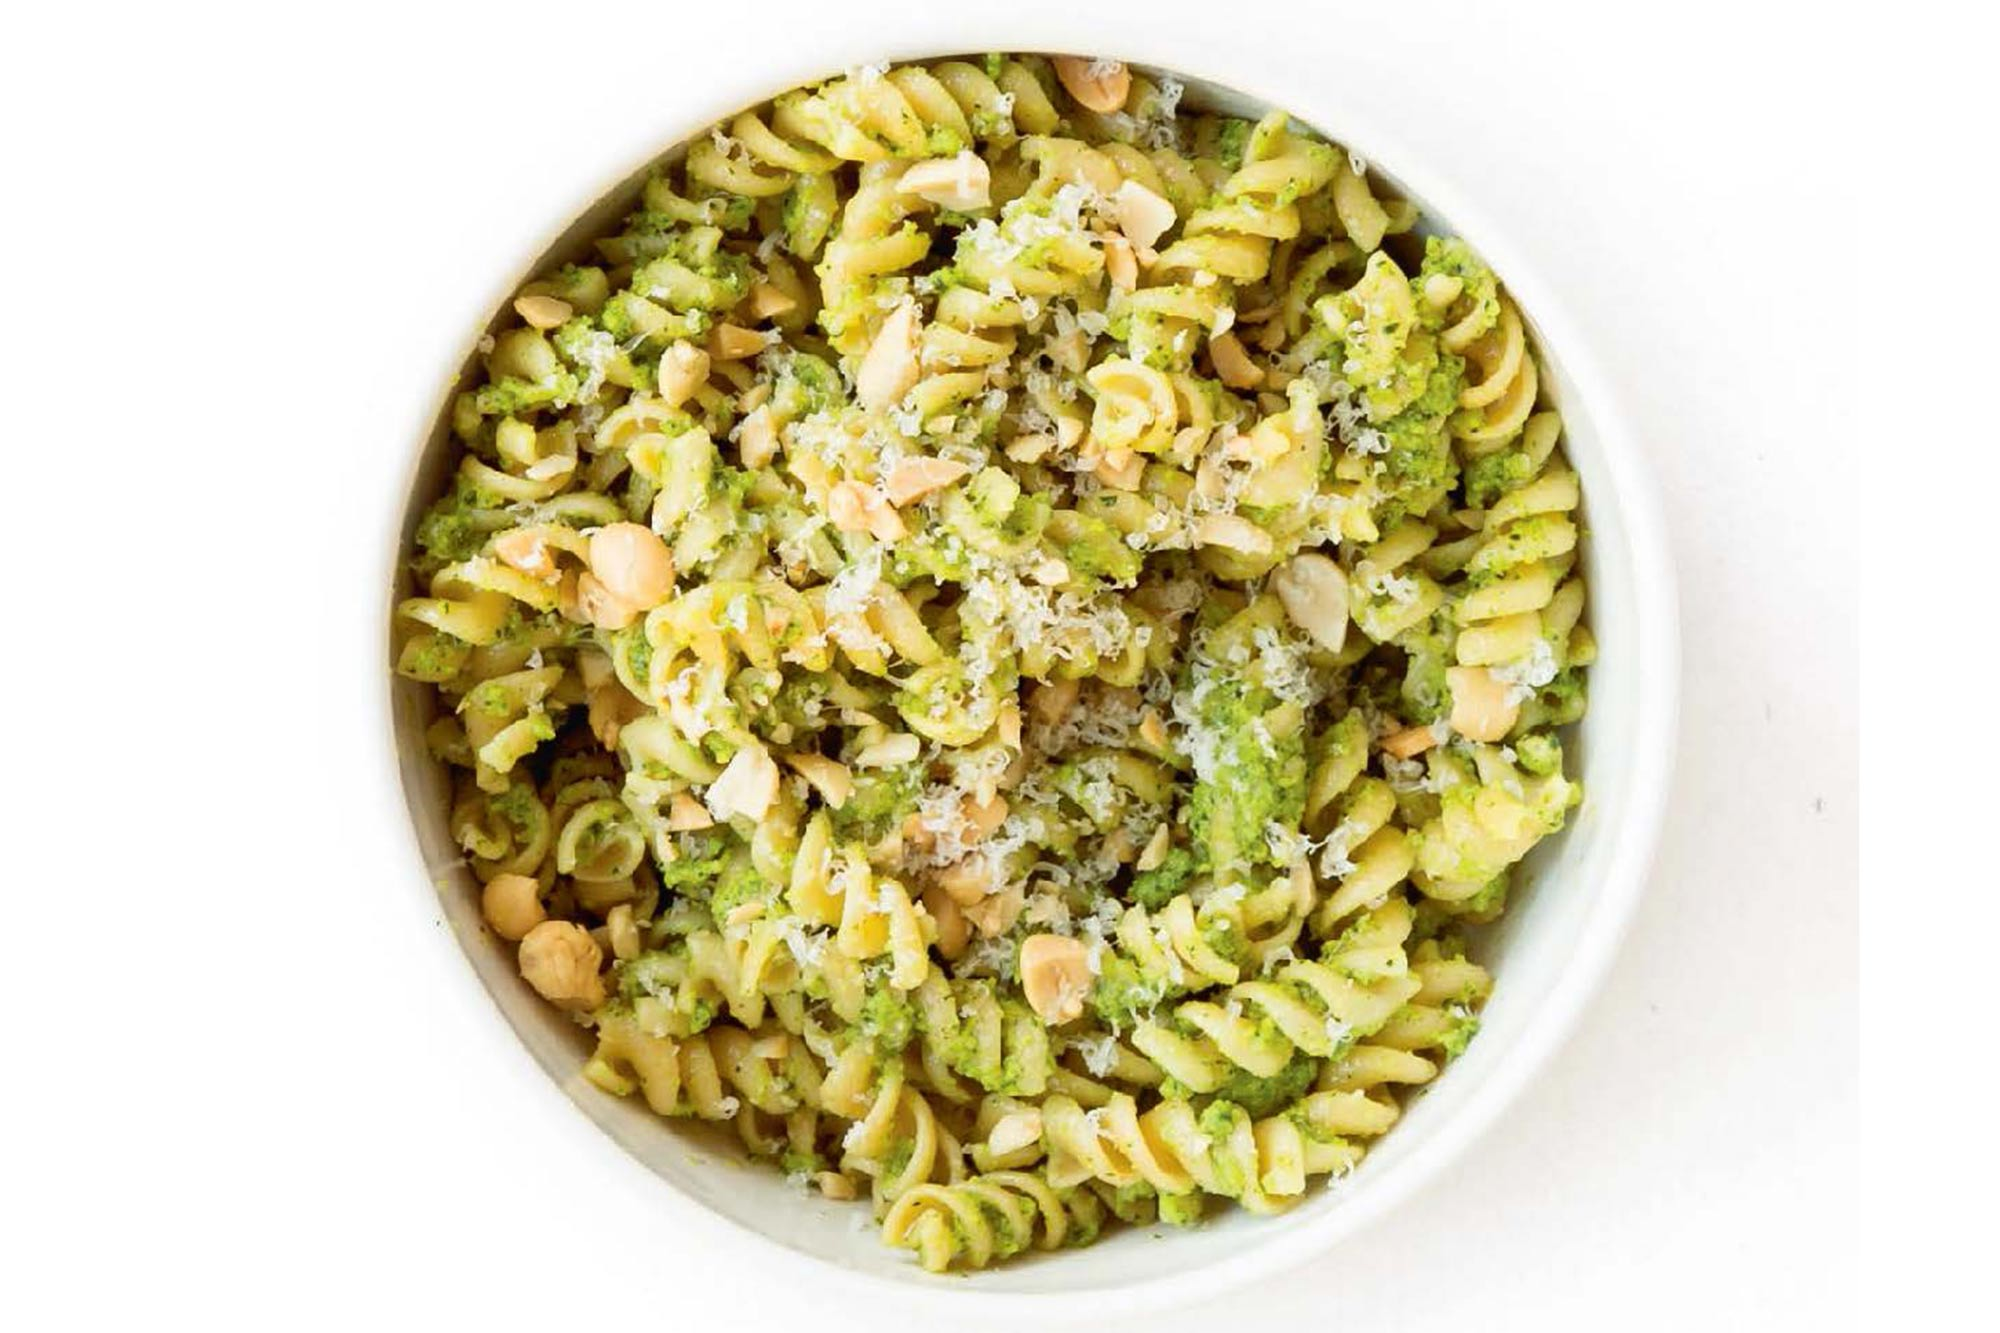 Glowing Green Pesto Pasta